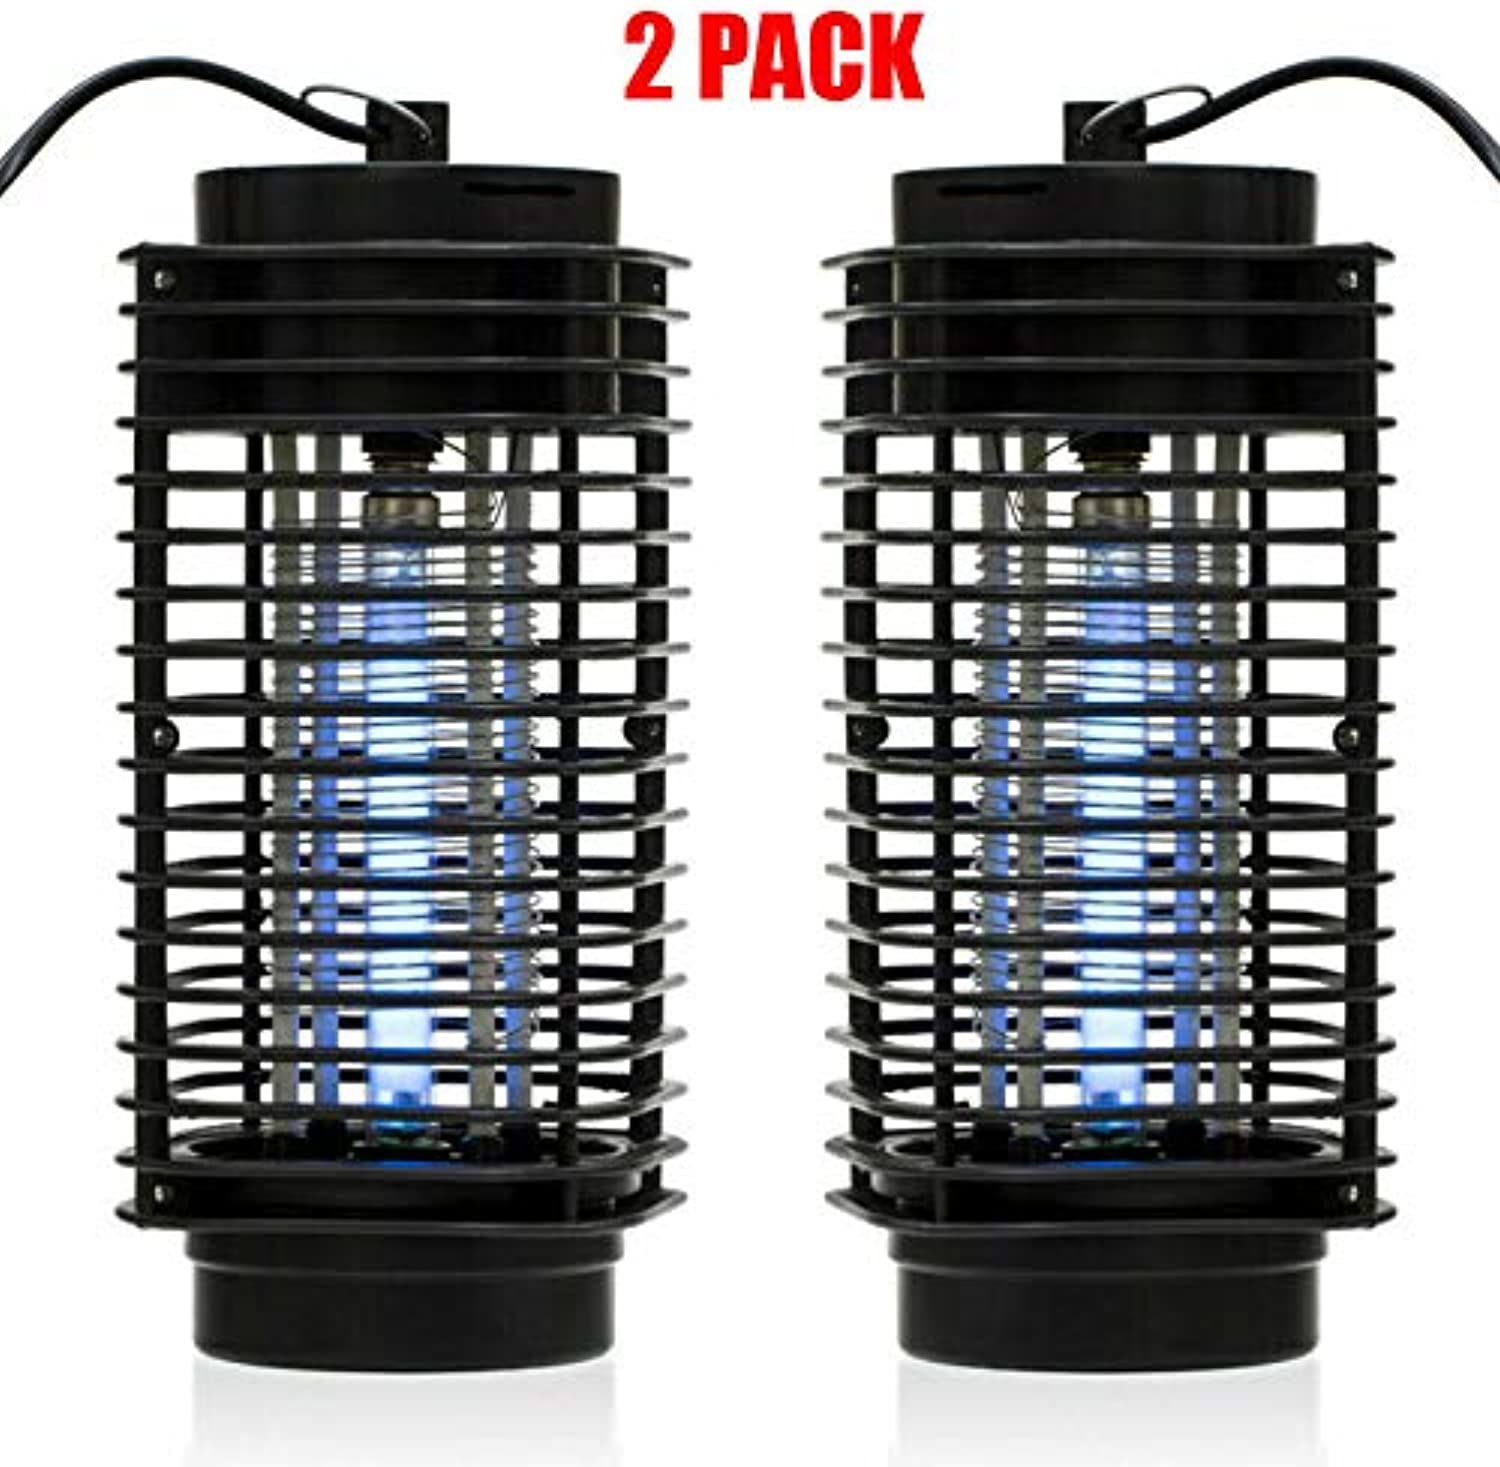 KUKUALE 2pack Electric Mosquito Fly Bug Insect Zapper Killer Trap Lamp 110V Stinger Pest